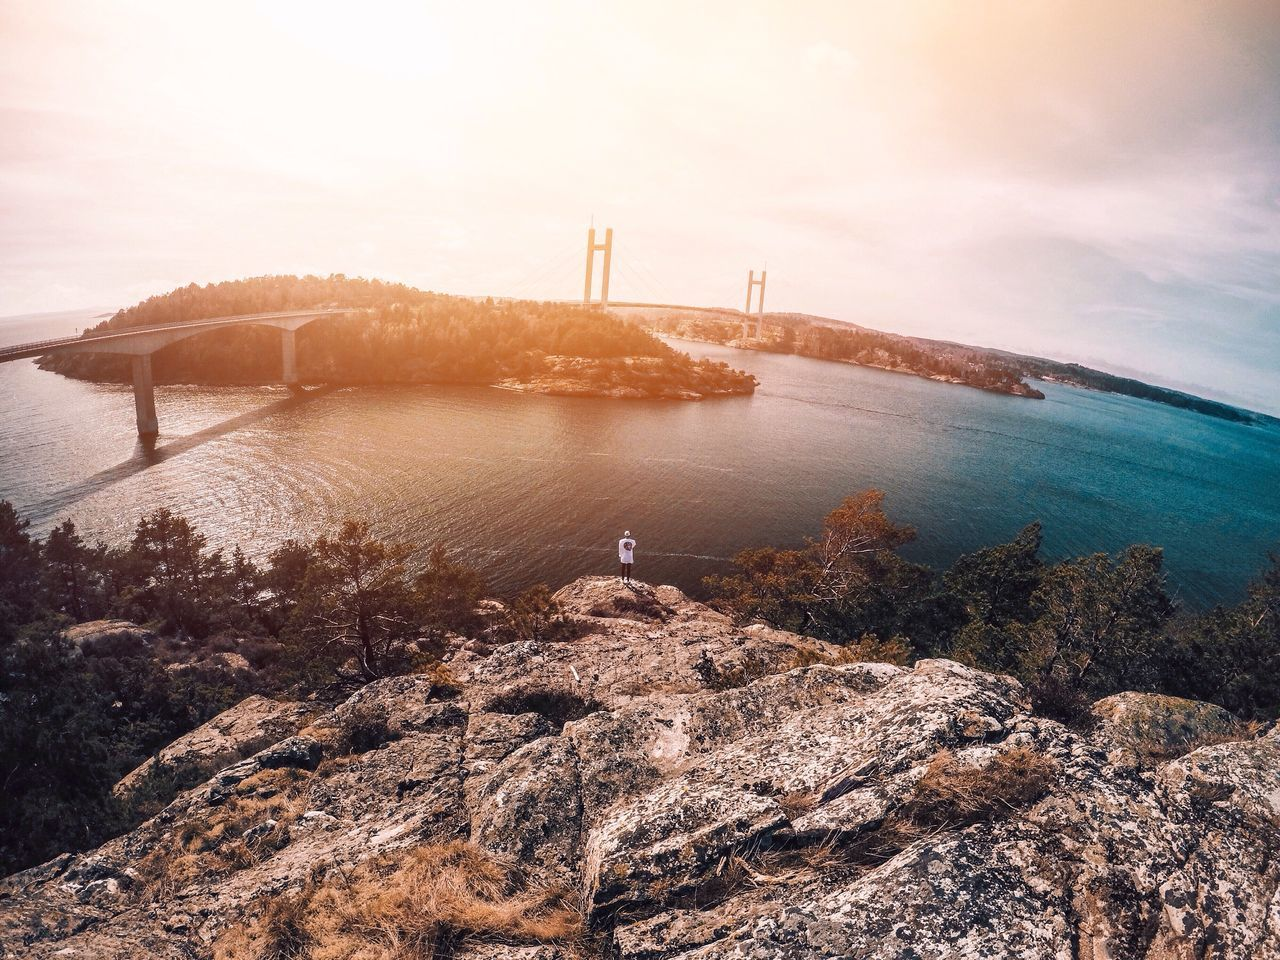 Sea Water Nature Sky Lighthouse Rock - Object Scenics Architecture Outdoors Tranquility Built Structure Horizon Over Water Nautical Vessel Suspension Bridge Sunset Beauty In Nature Day Travel Destinations No People